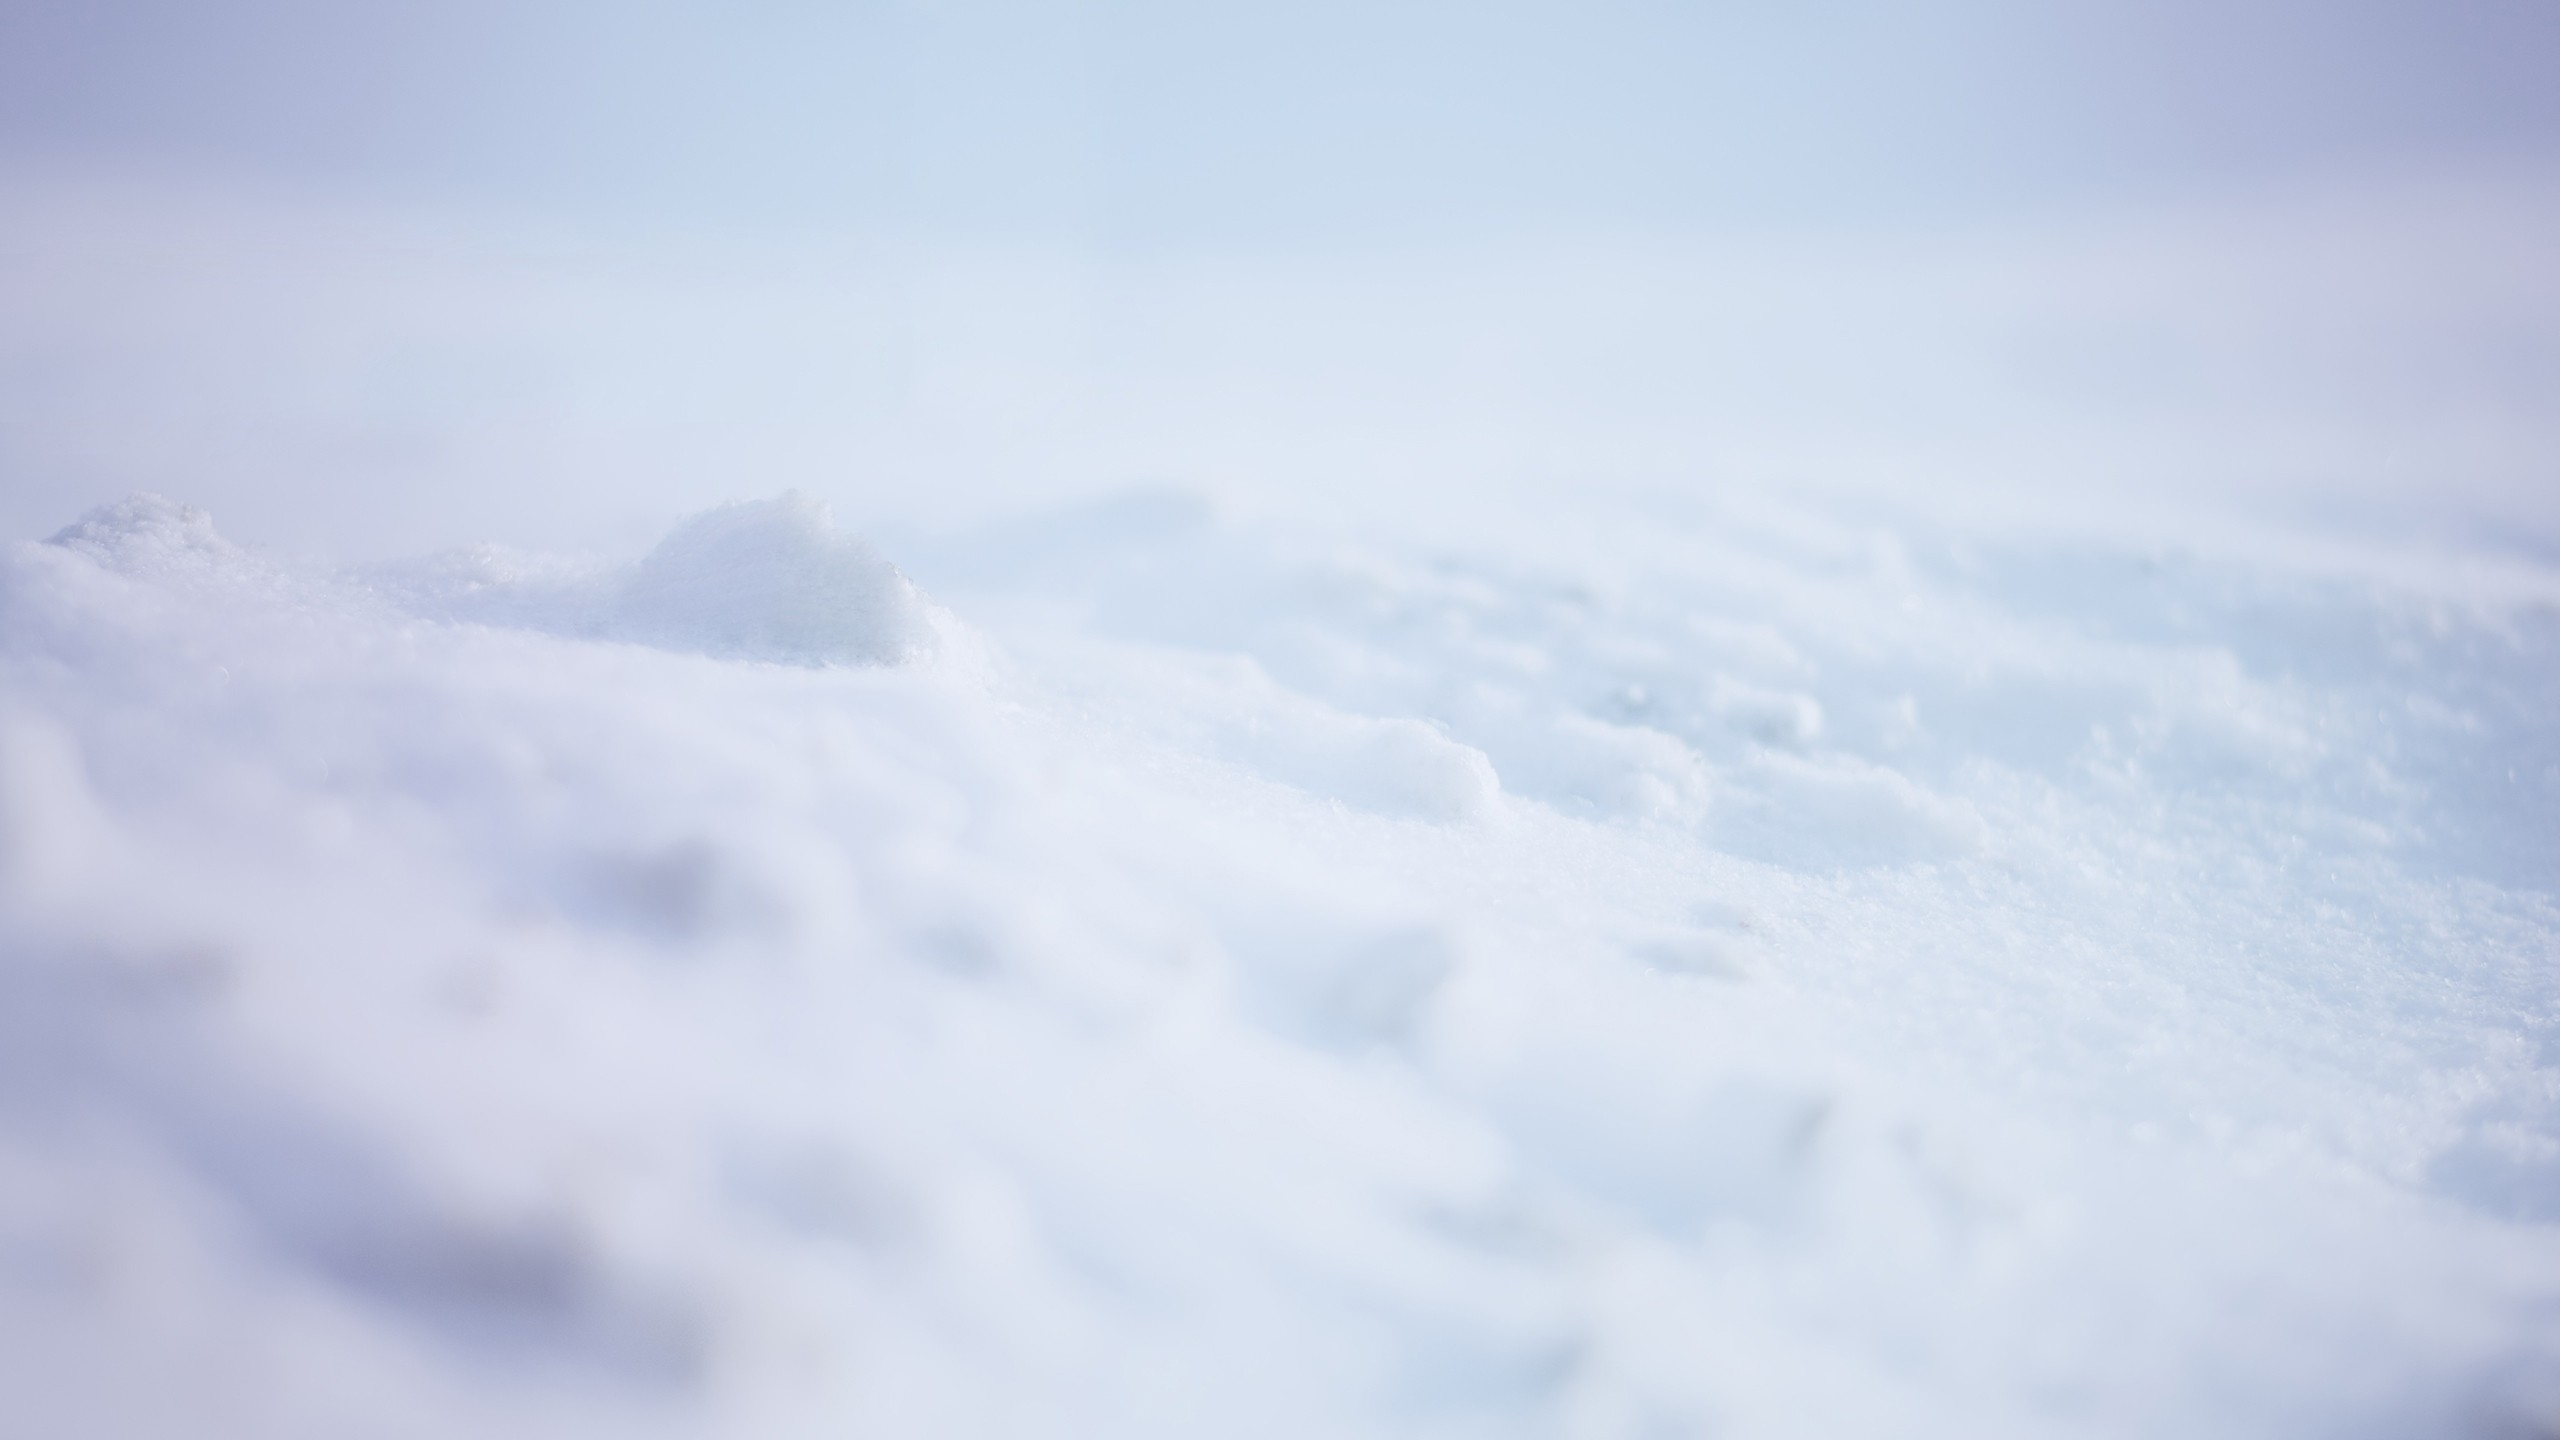 snow background wallpaper | 2560x1440 | #53670